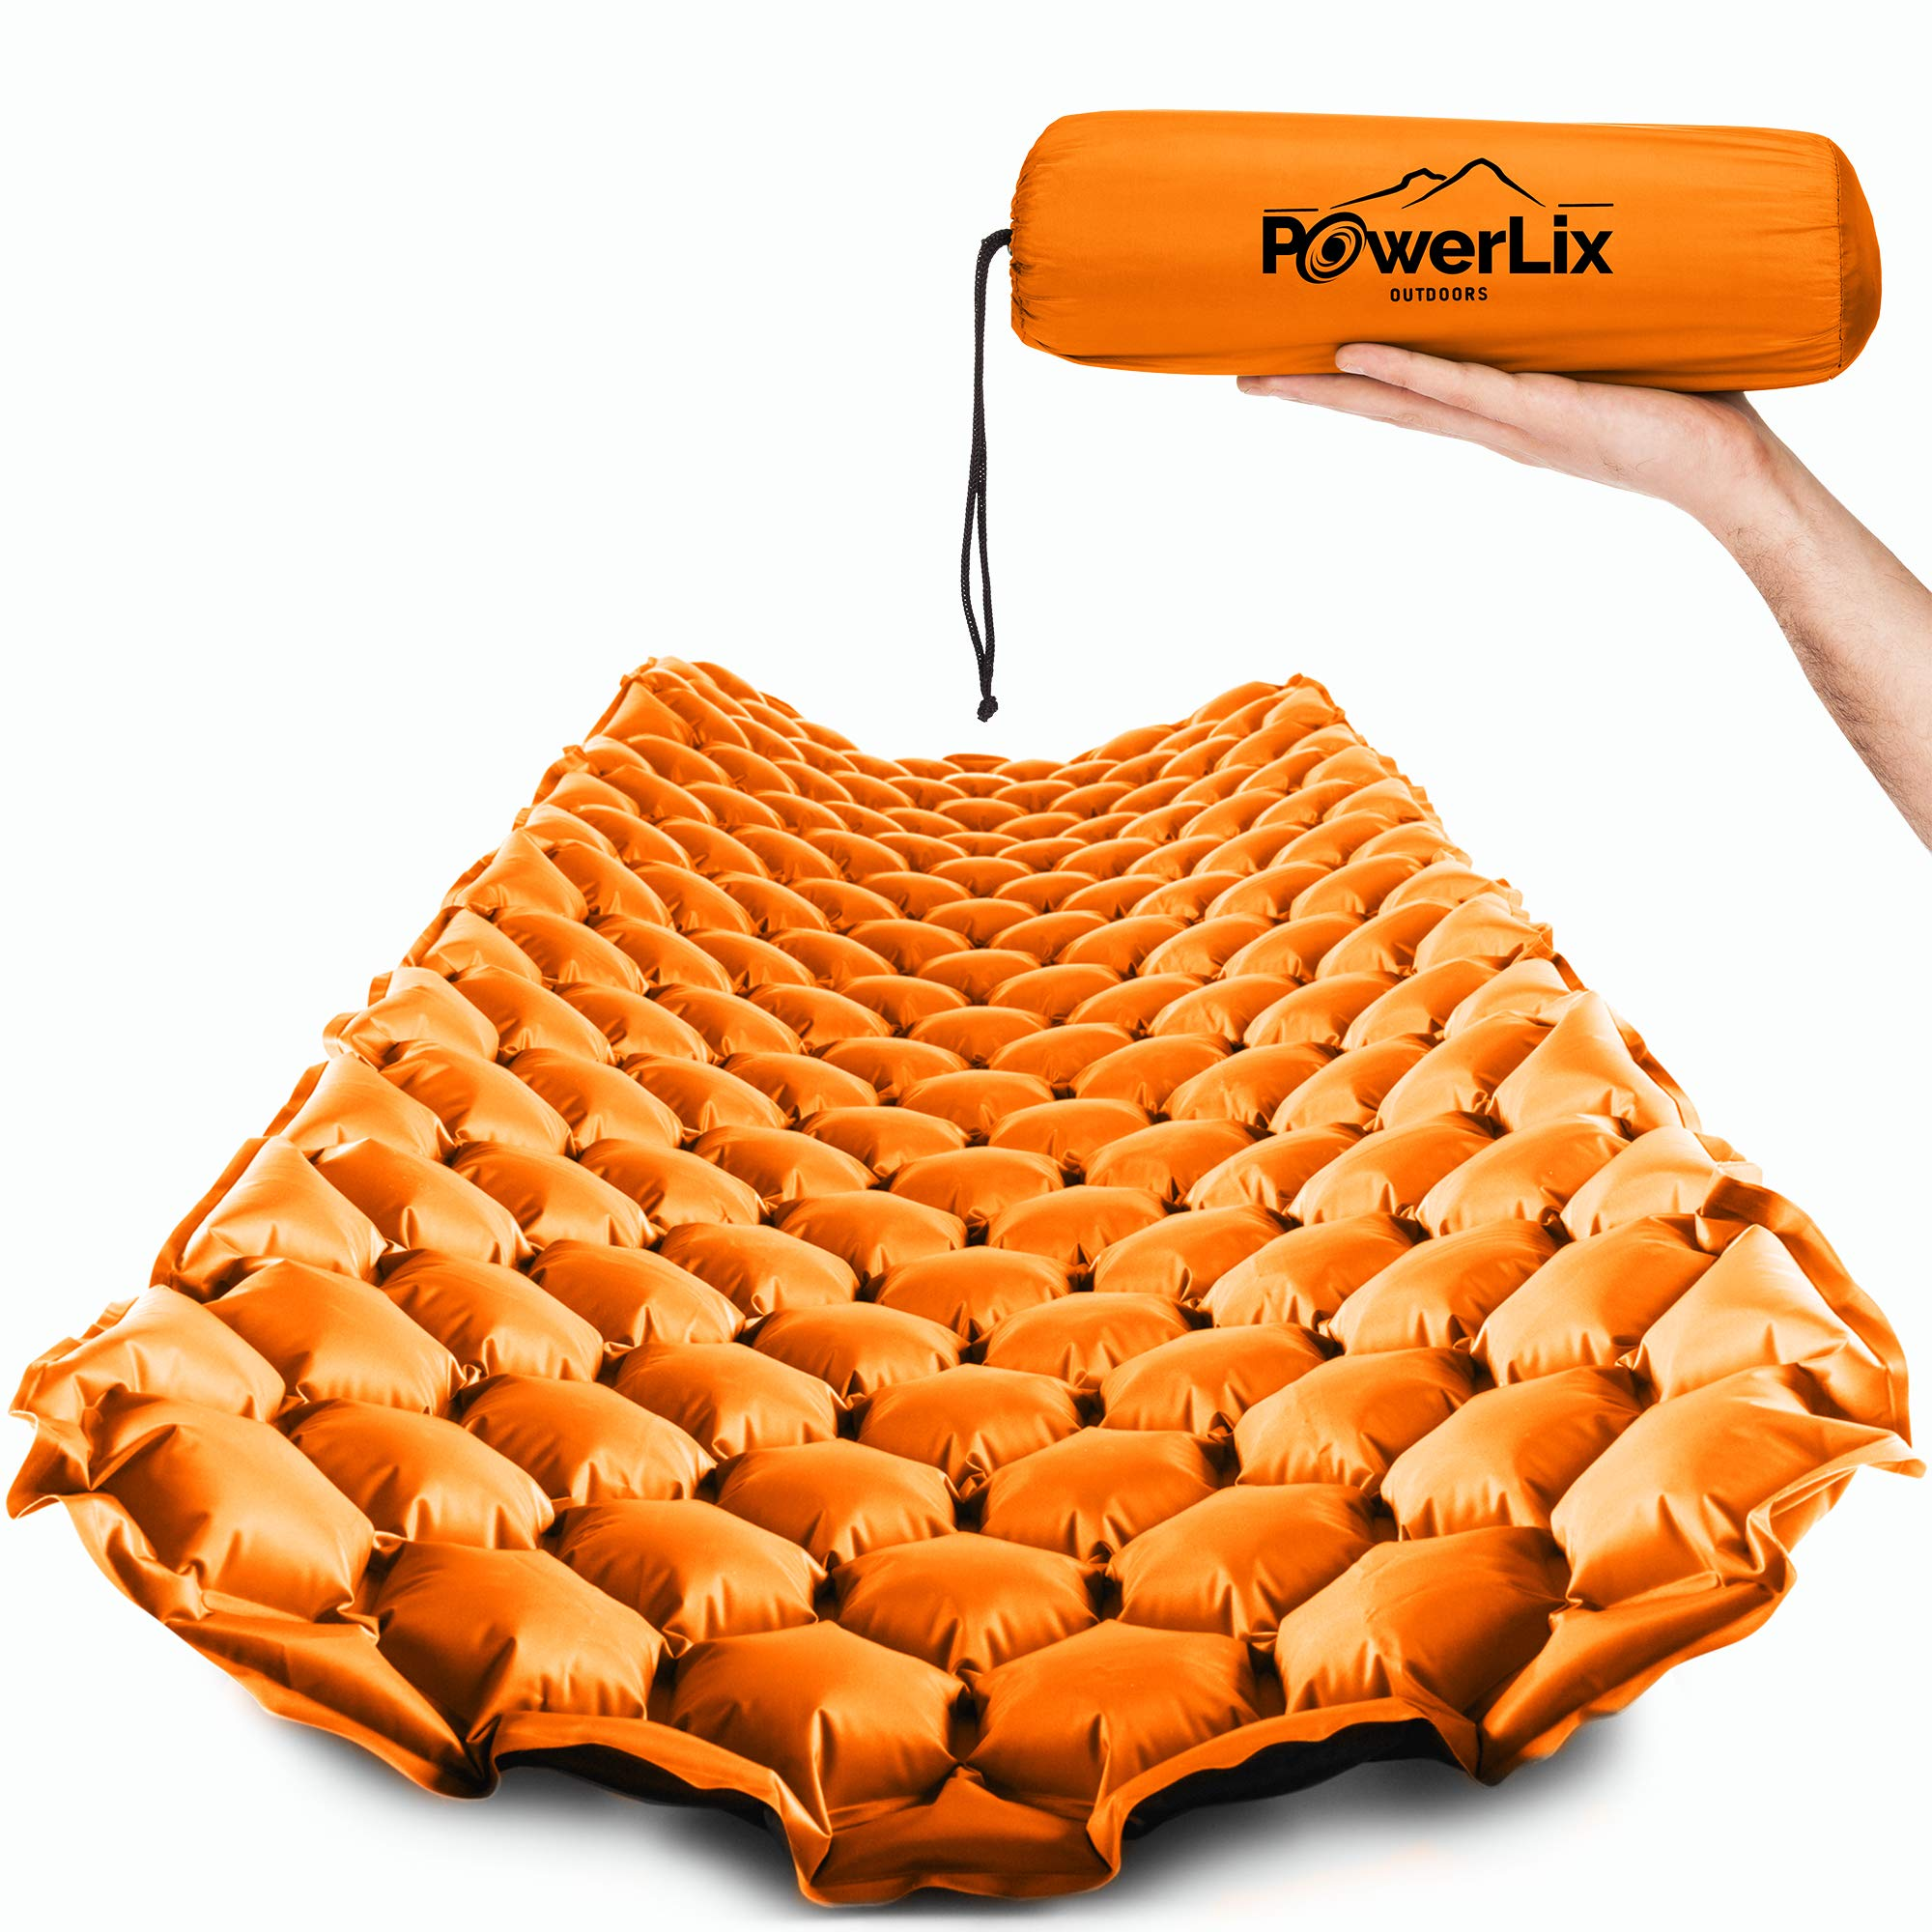 POWERLIX Sleeping Pad - Ultralight Inflatable Sleeping Mat, Best Self Serving Pad for Camping, Backpacking, Hiking - Airpad, Inflating Bag, Carry Bag, Repair Kit - Compact & Lightweight Air Mattress by POWERLIX